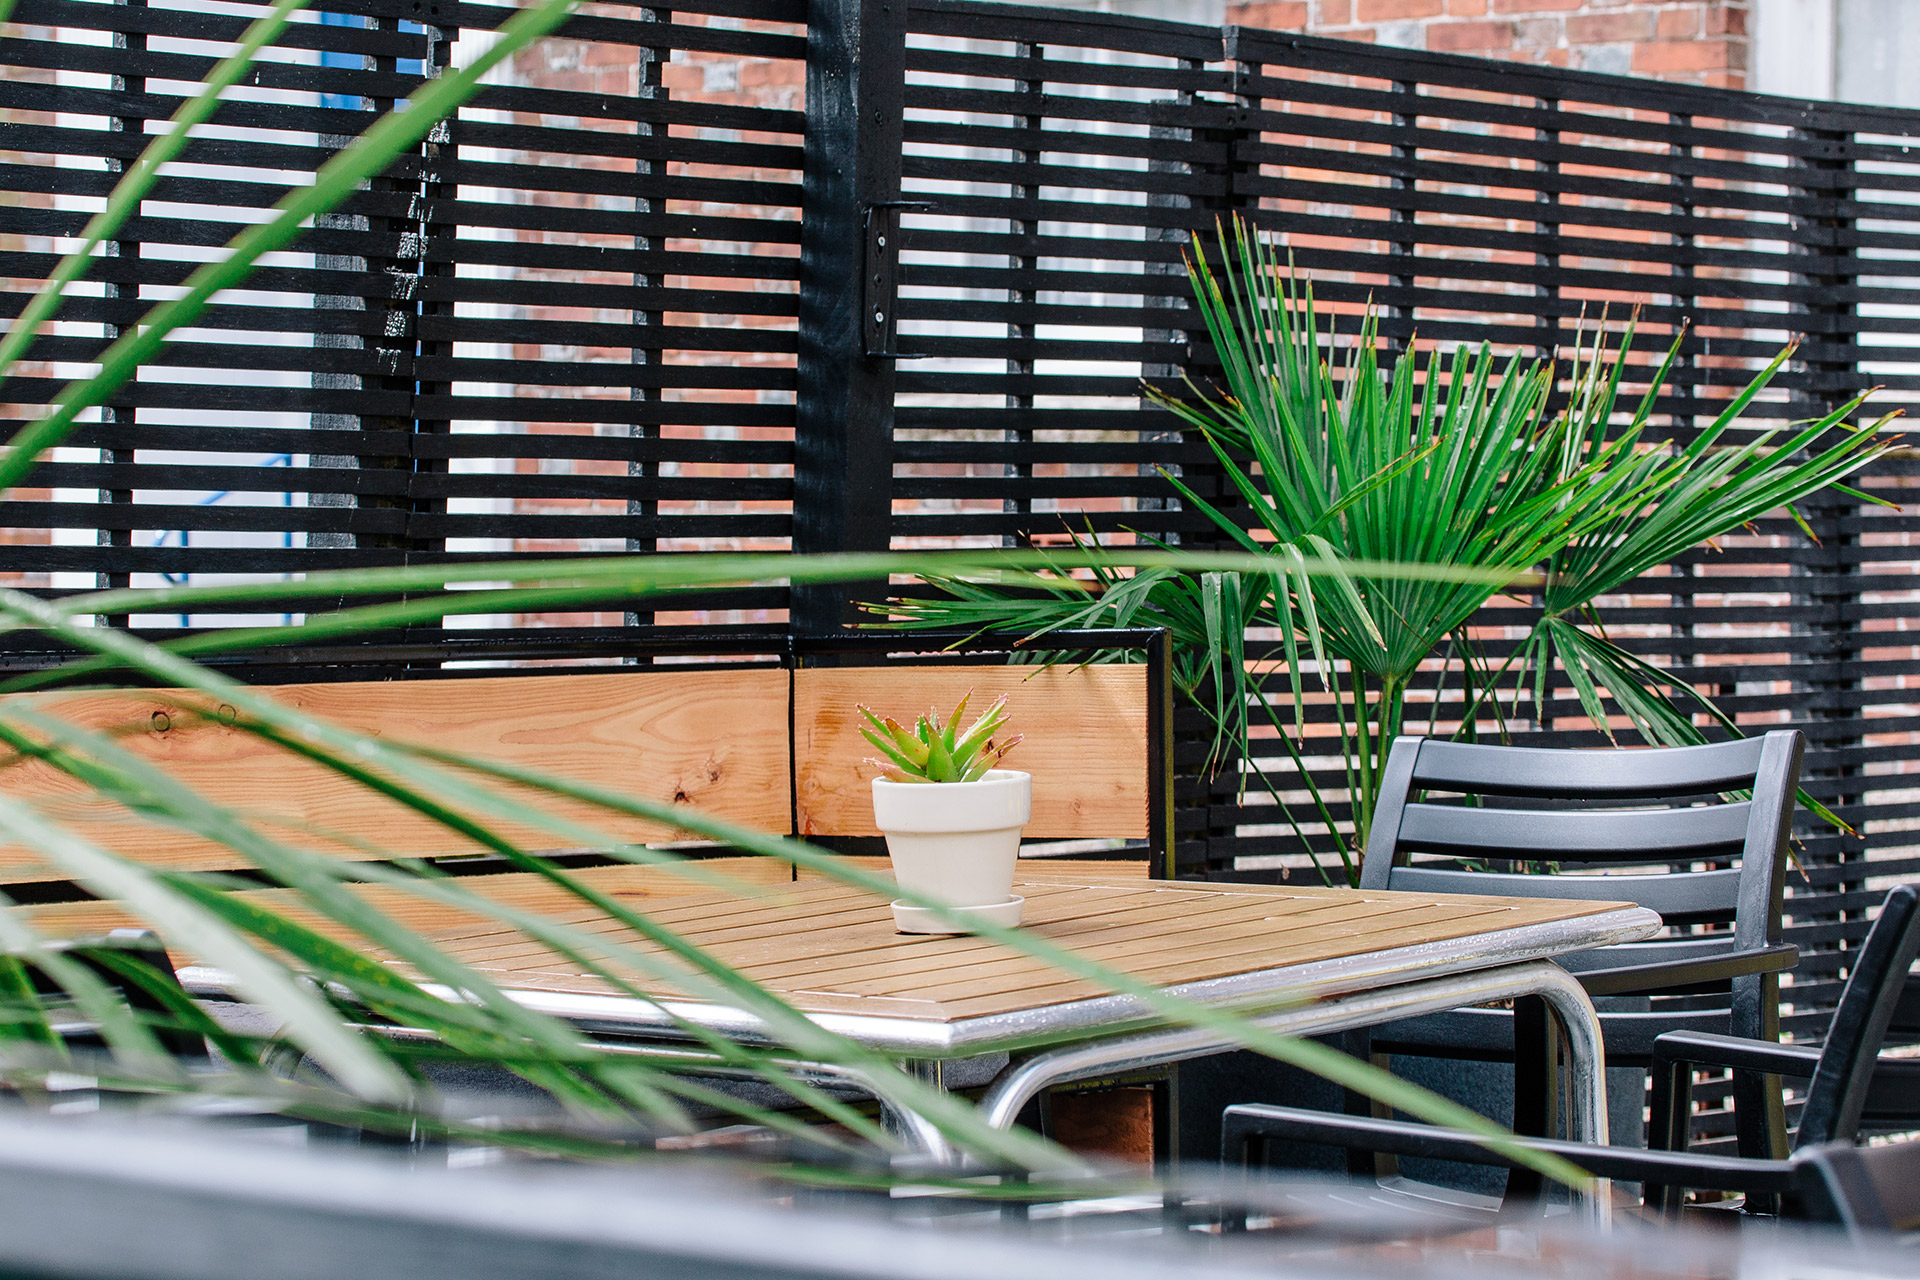 bespoke seating are in alfresco dining area